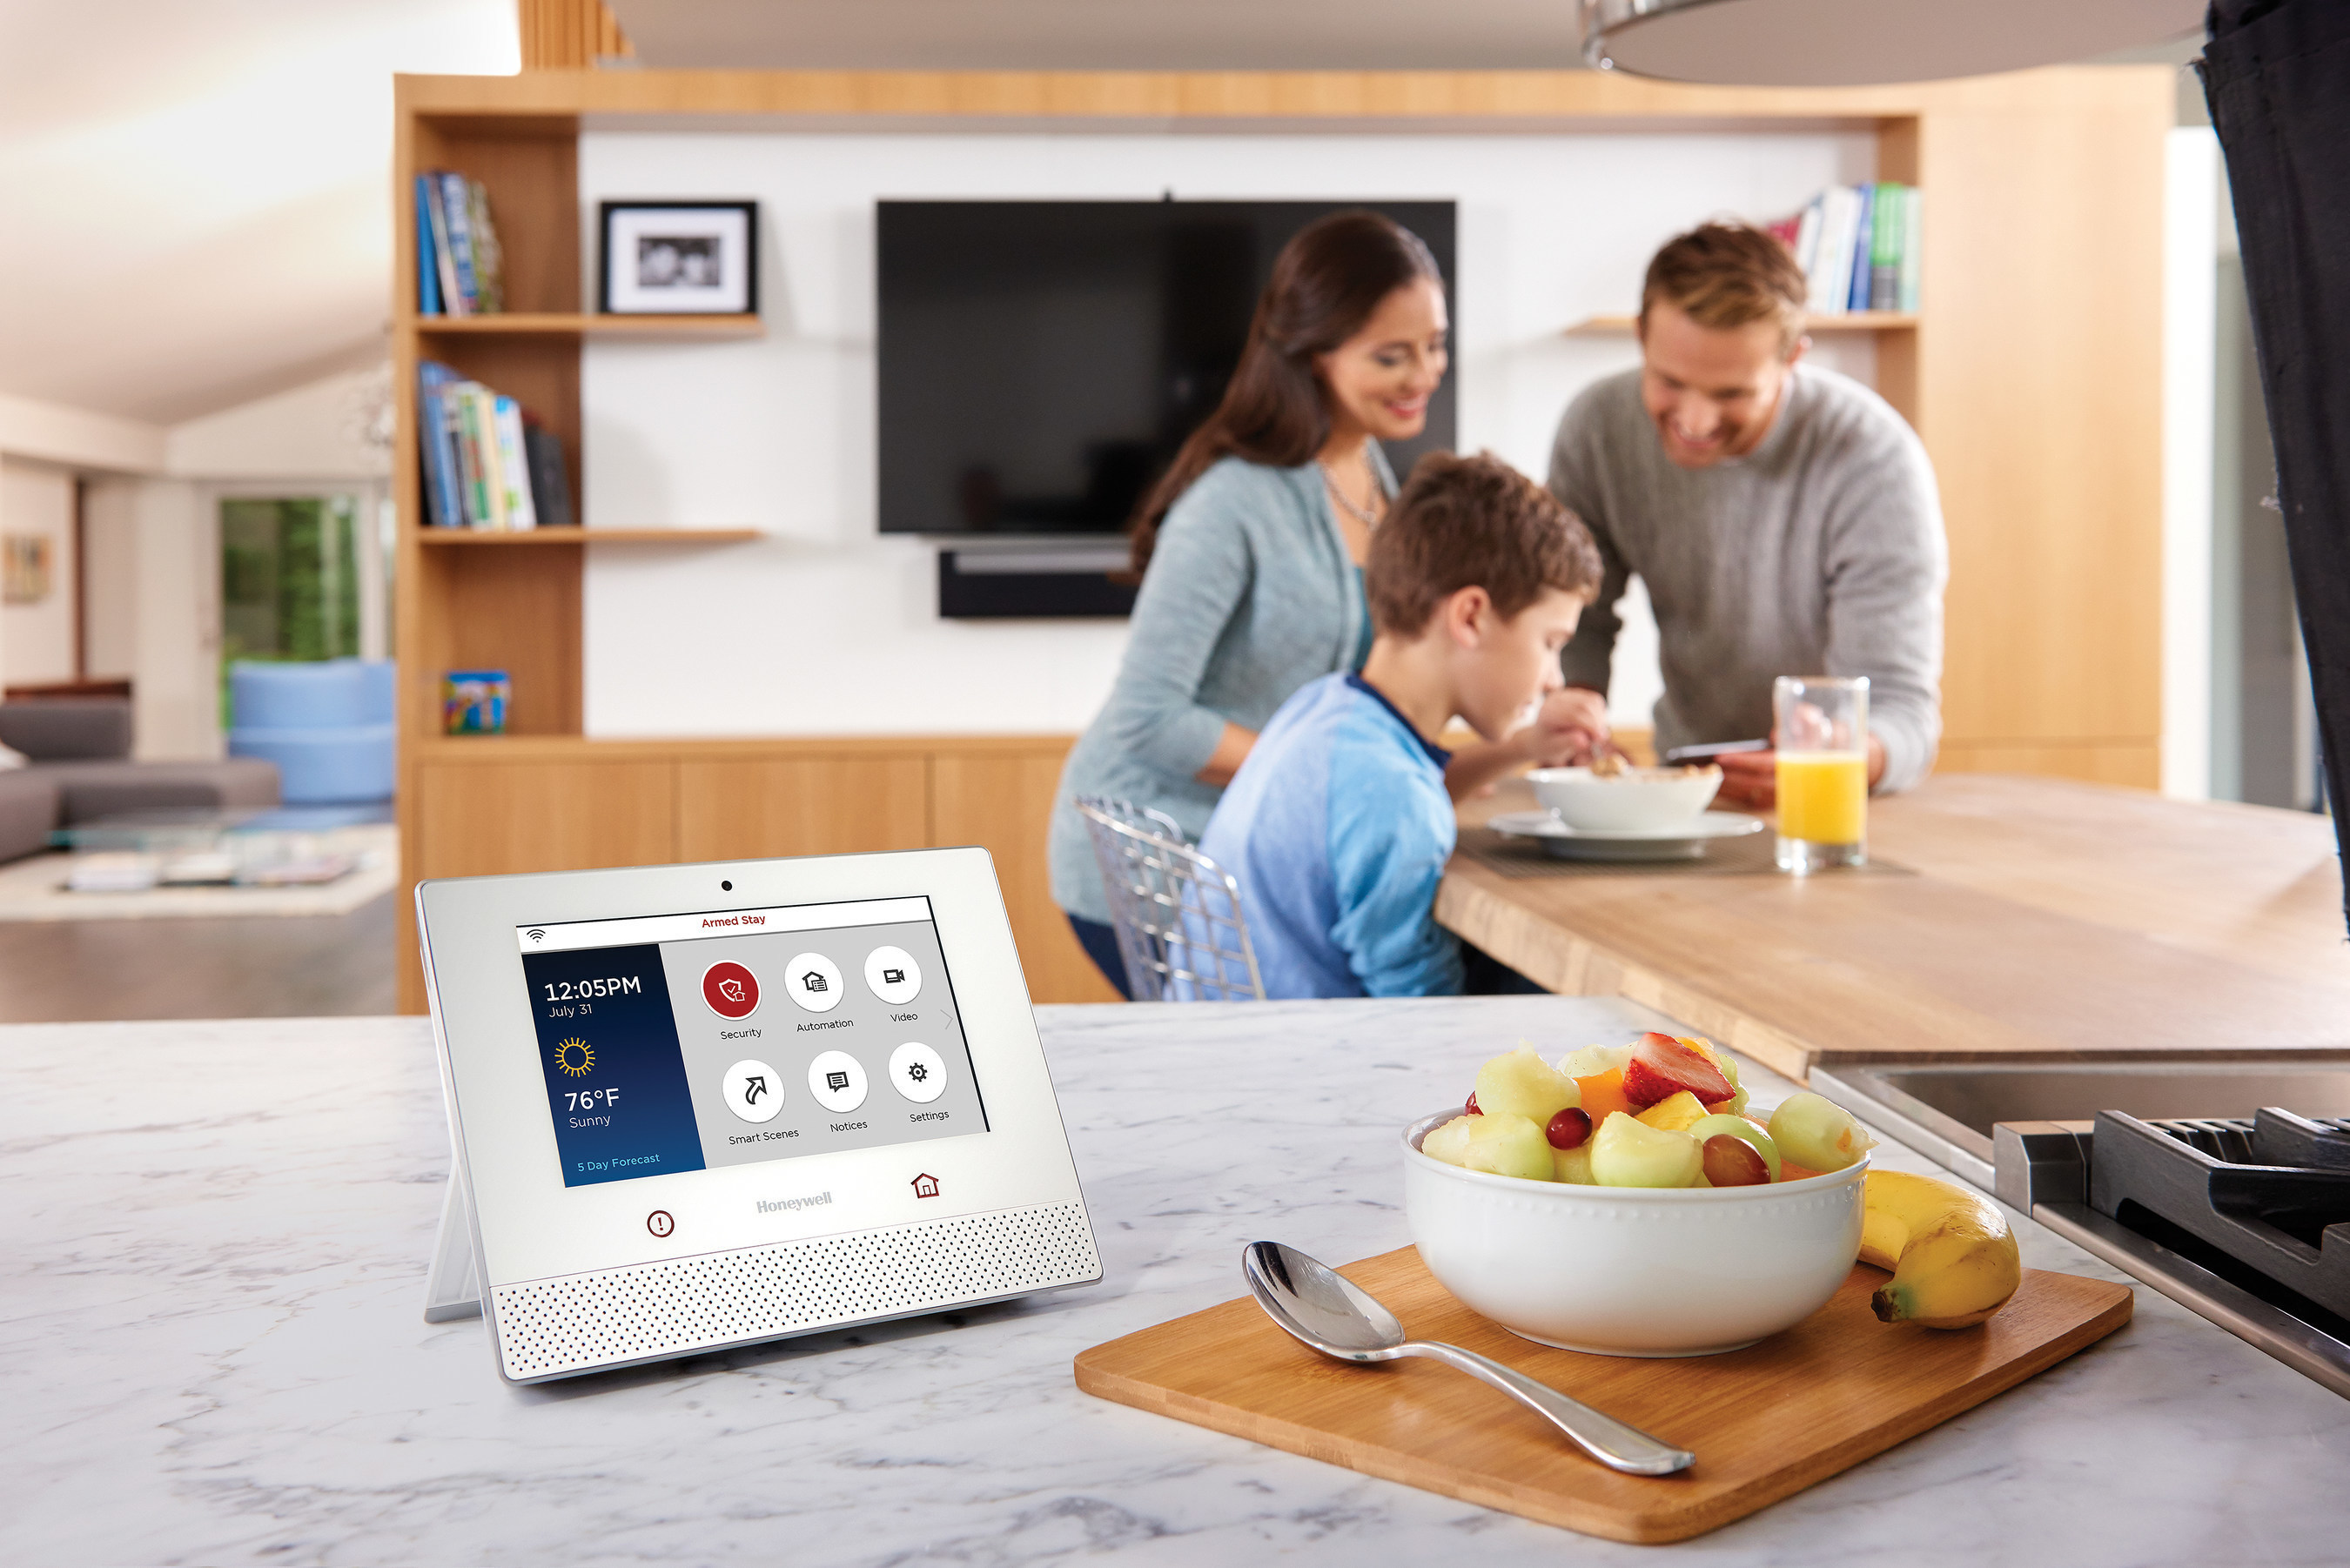 Smart Home For The Holidays: Honeywell Offers Tips To Maximize Connected Home Technology While Enjoying The Season